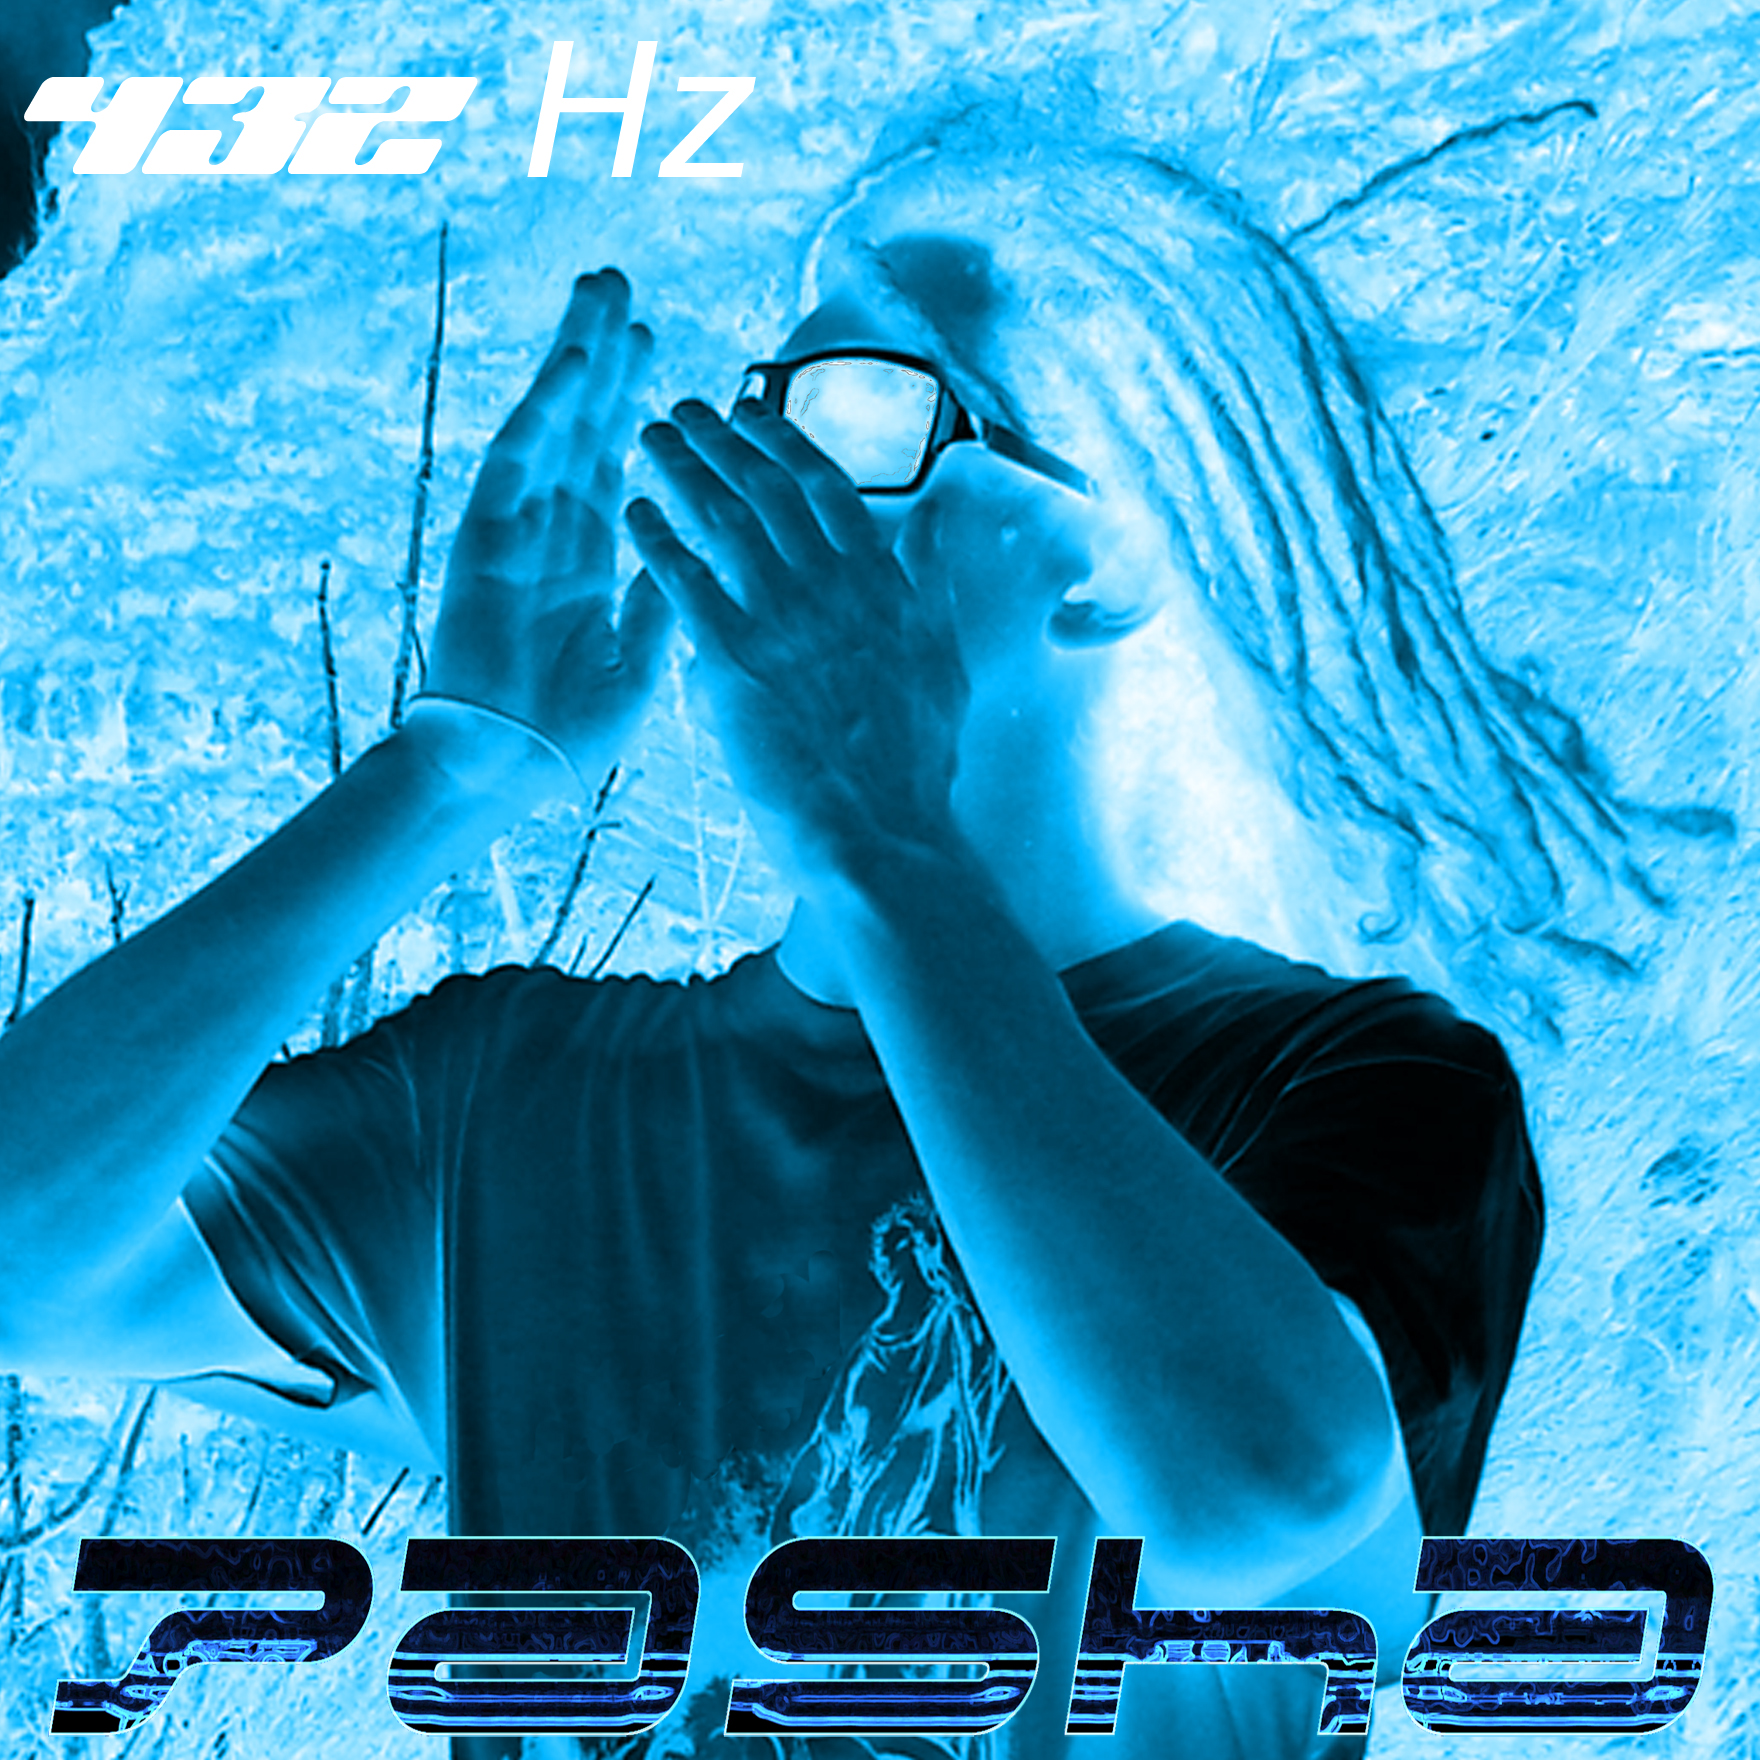 """432 Hz"" music album by Pasha"